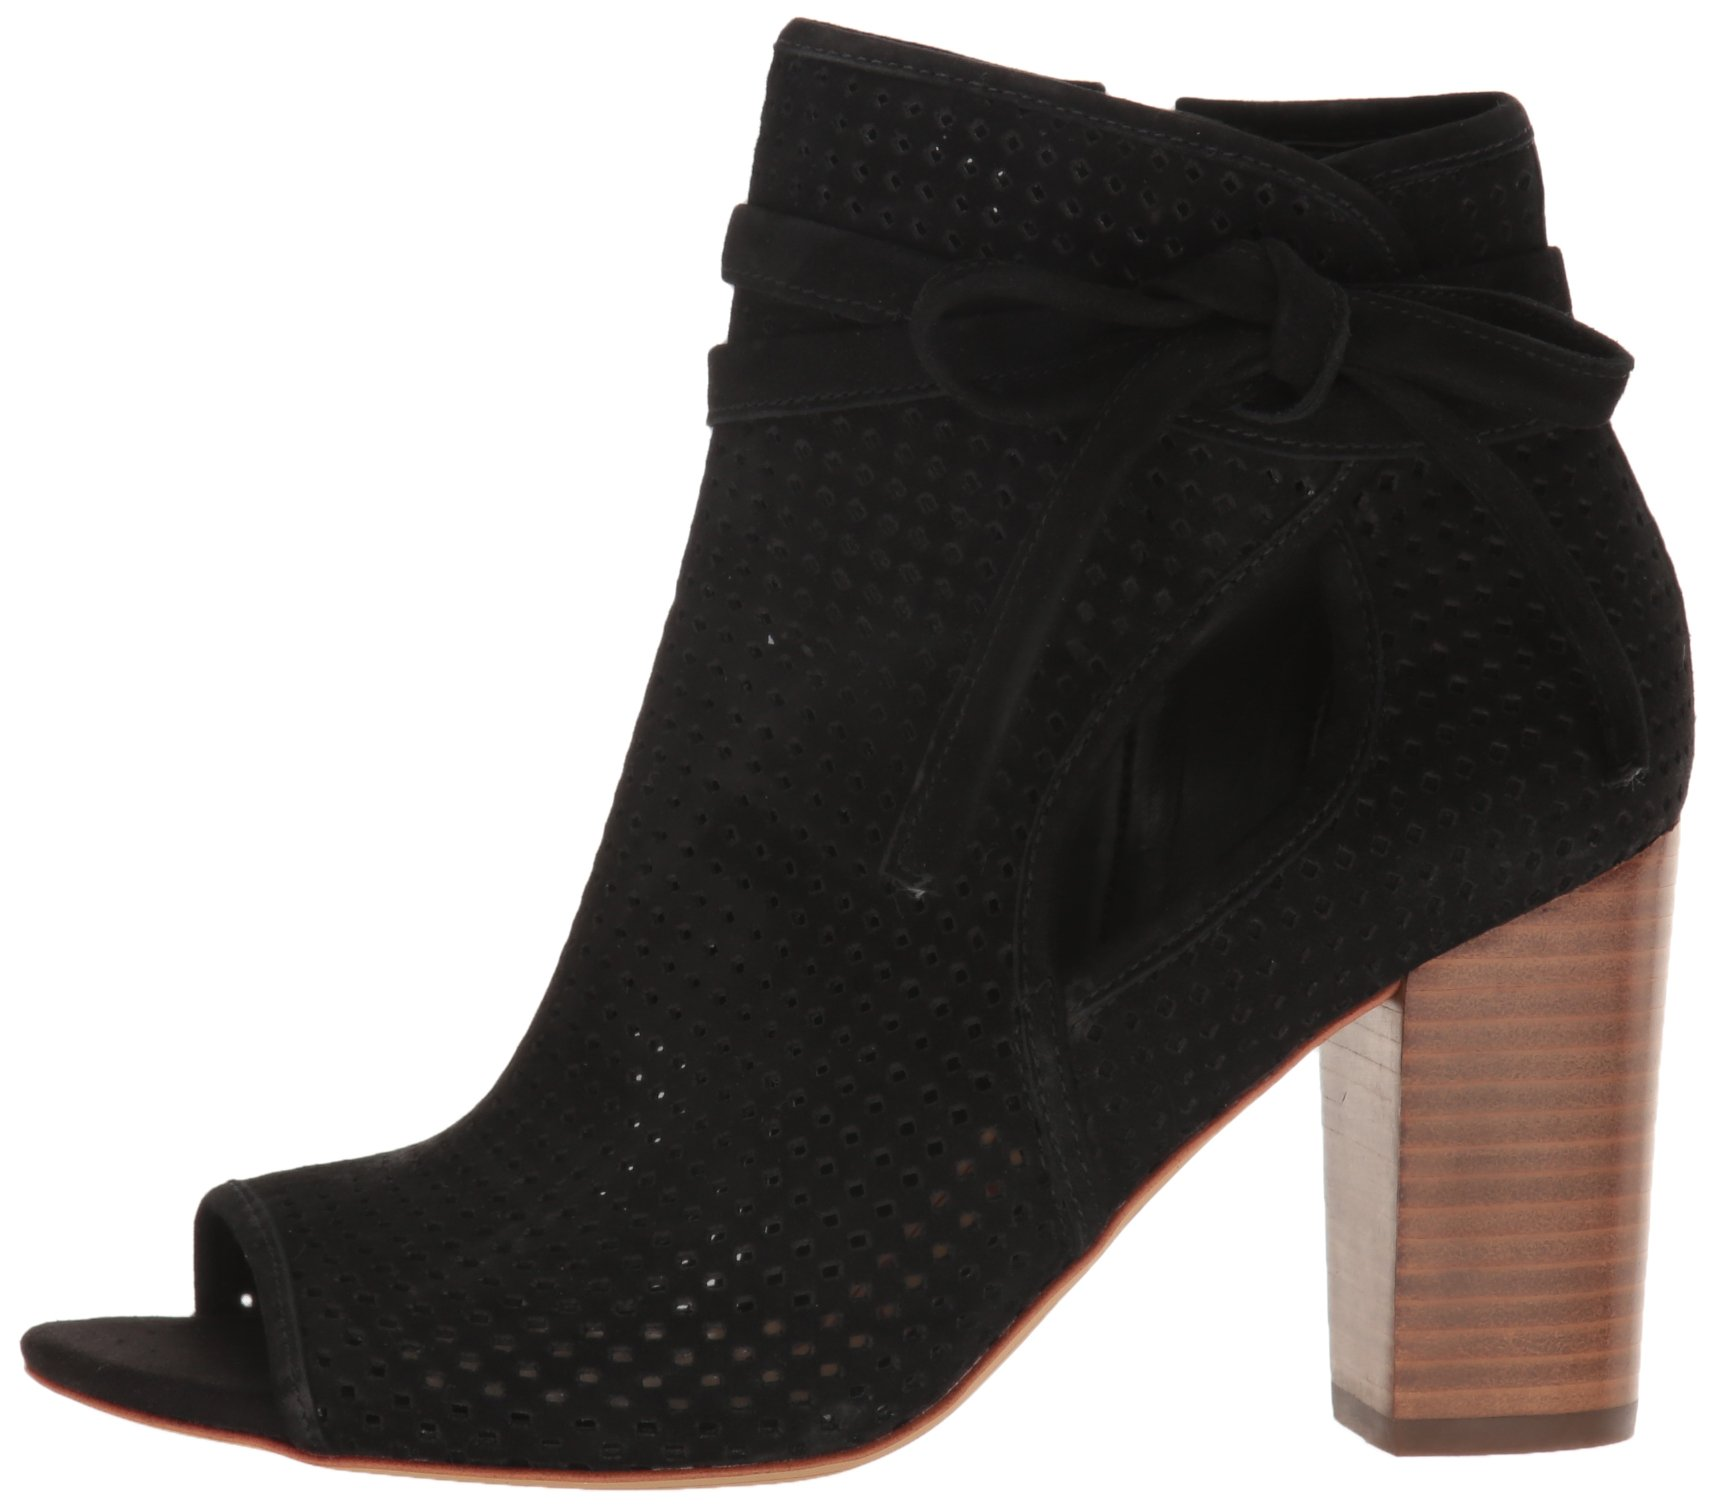 Sam Edelman Women's Ellery, Black, 8.5 M US by Sam Edelman (Image #5)